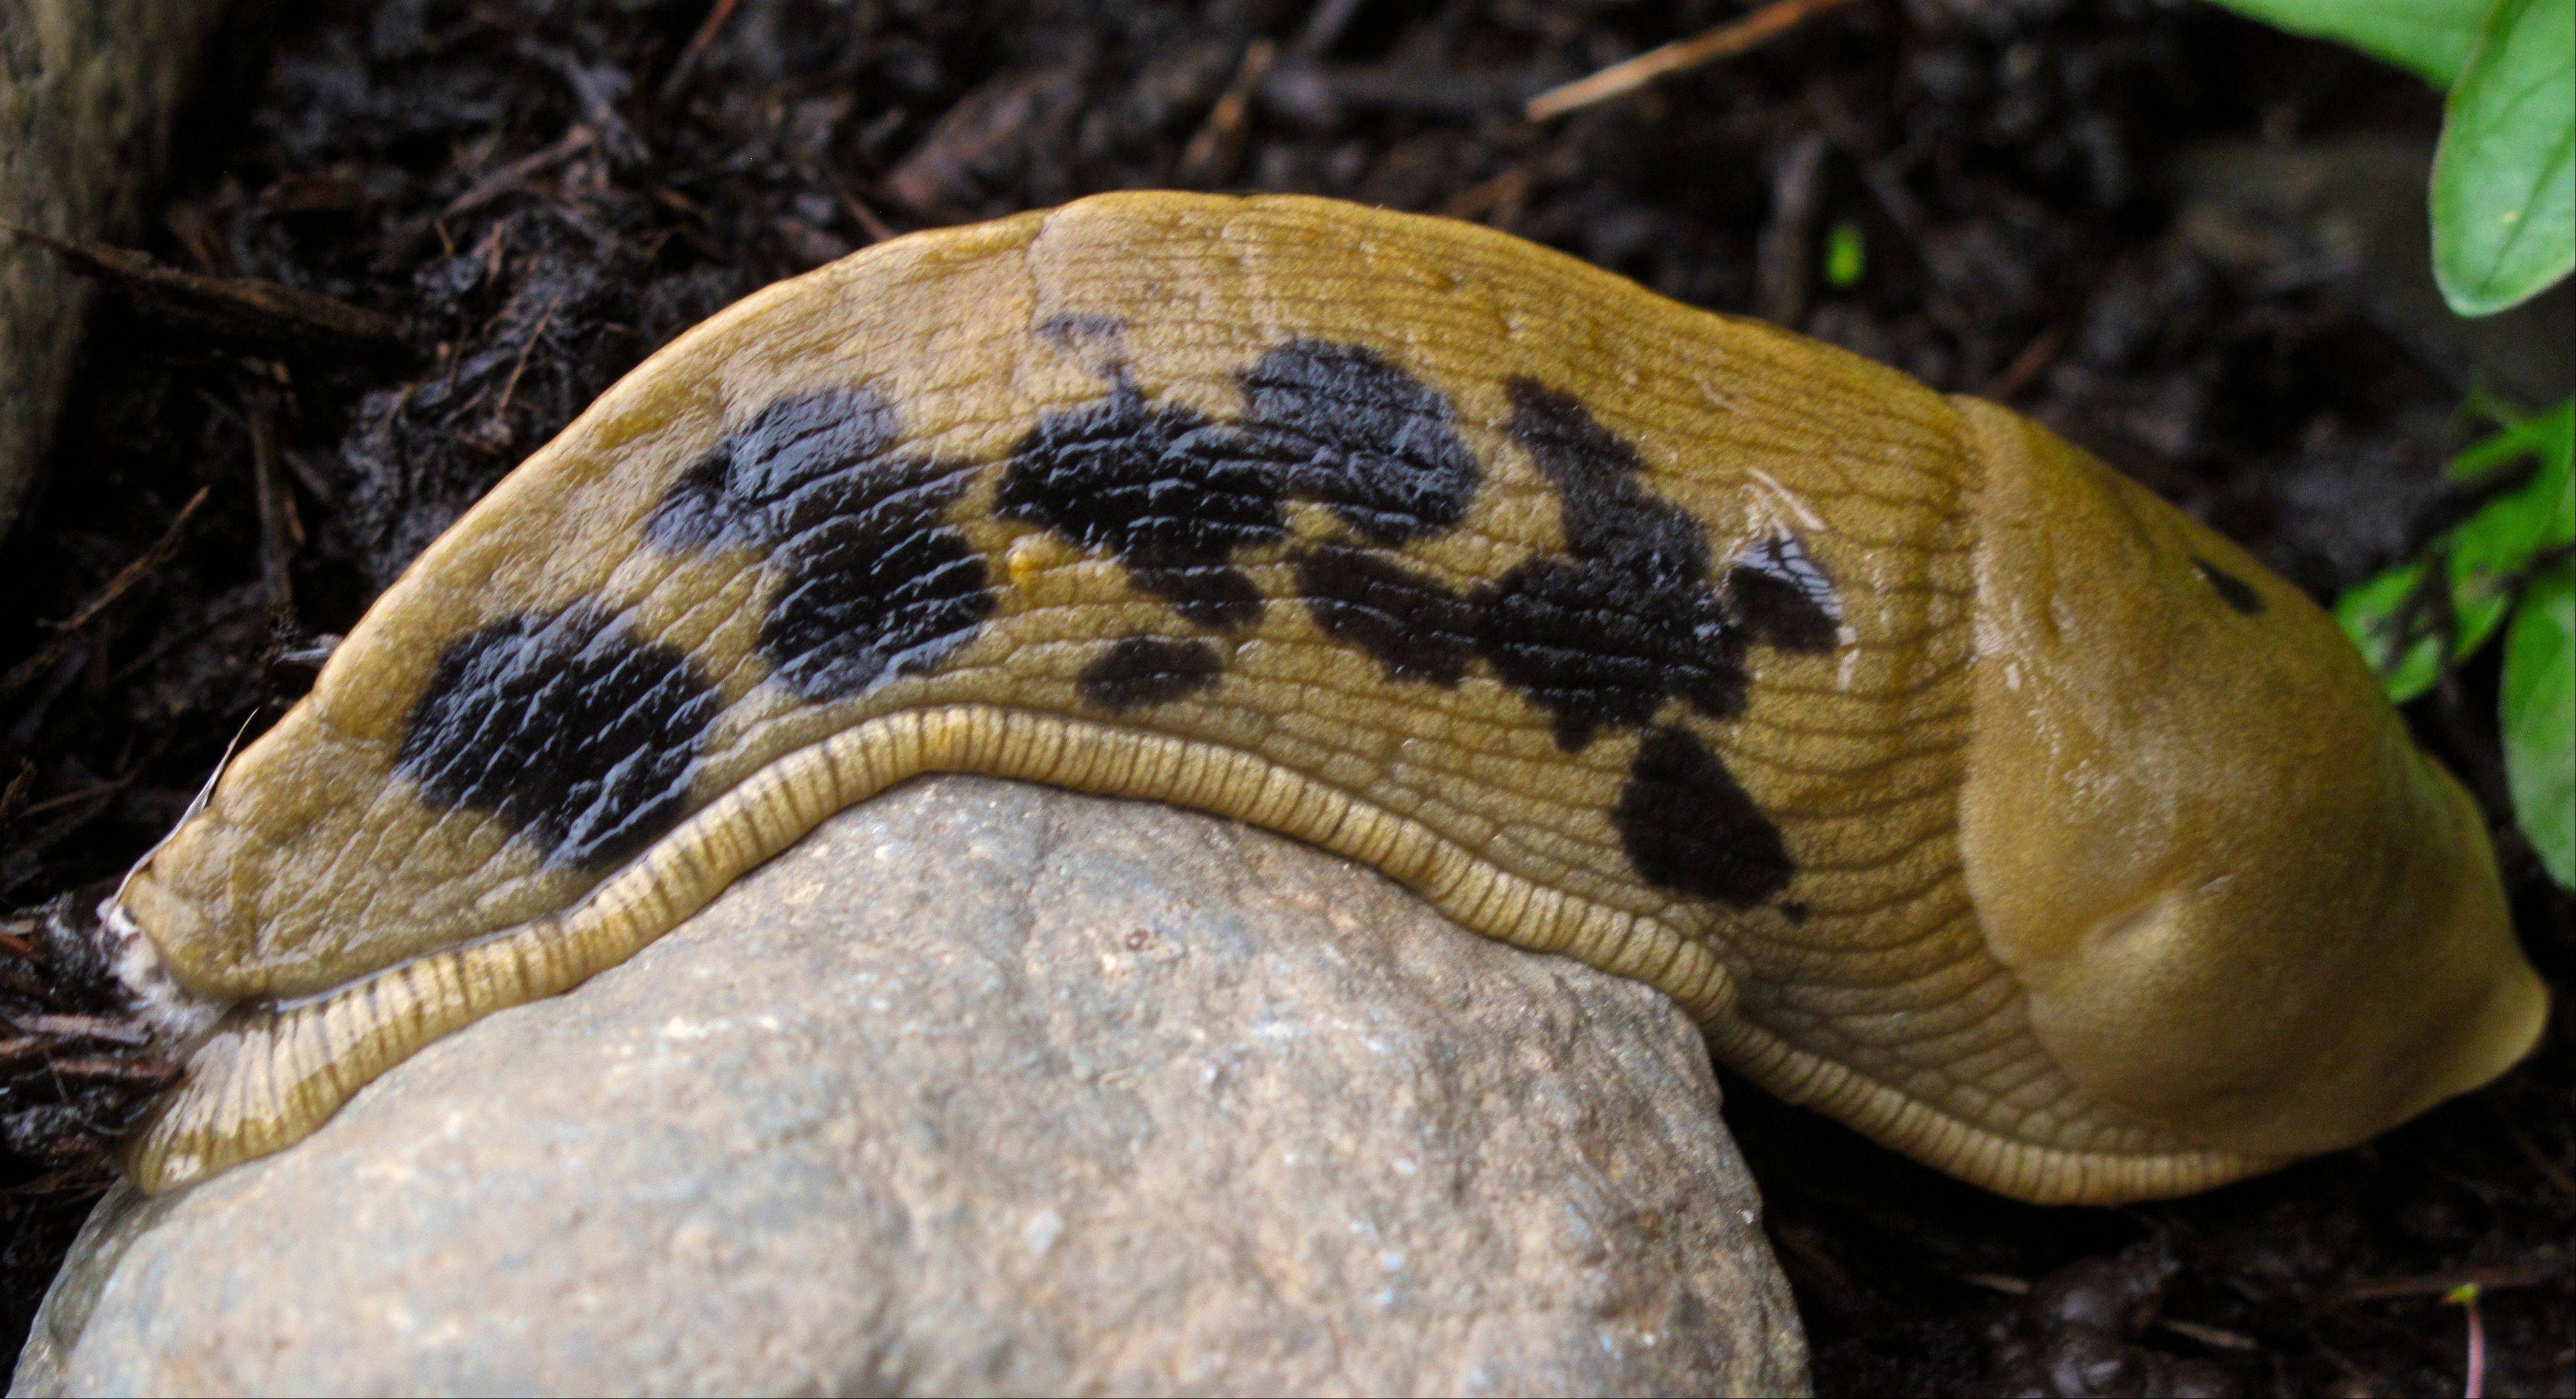 Slugs are ravenous plant eaters that leave behind slimy trails of destruction. Remove any debris that gives them a place to hide during the day, to prevent their pattern of coming out to feed at night.